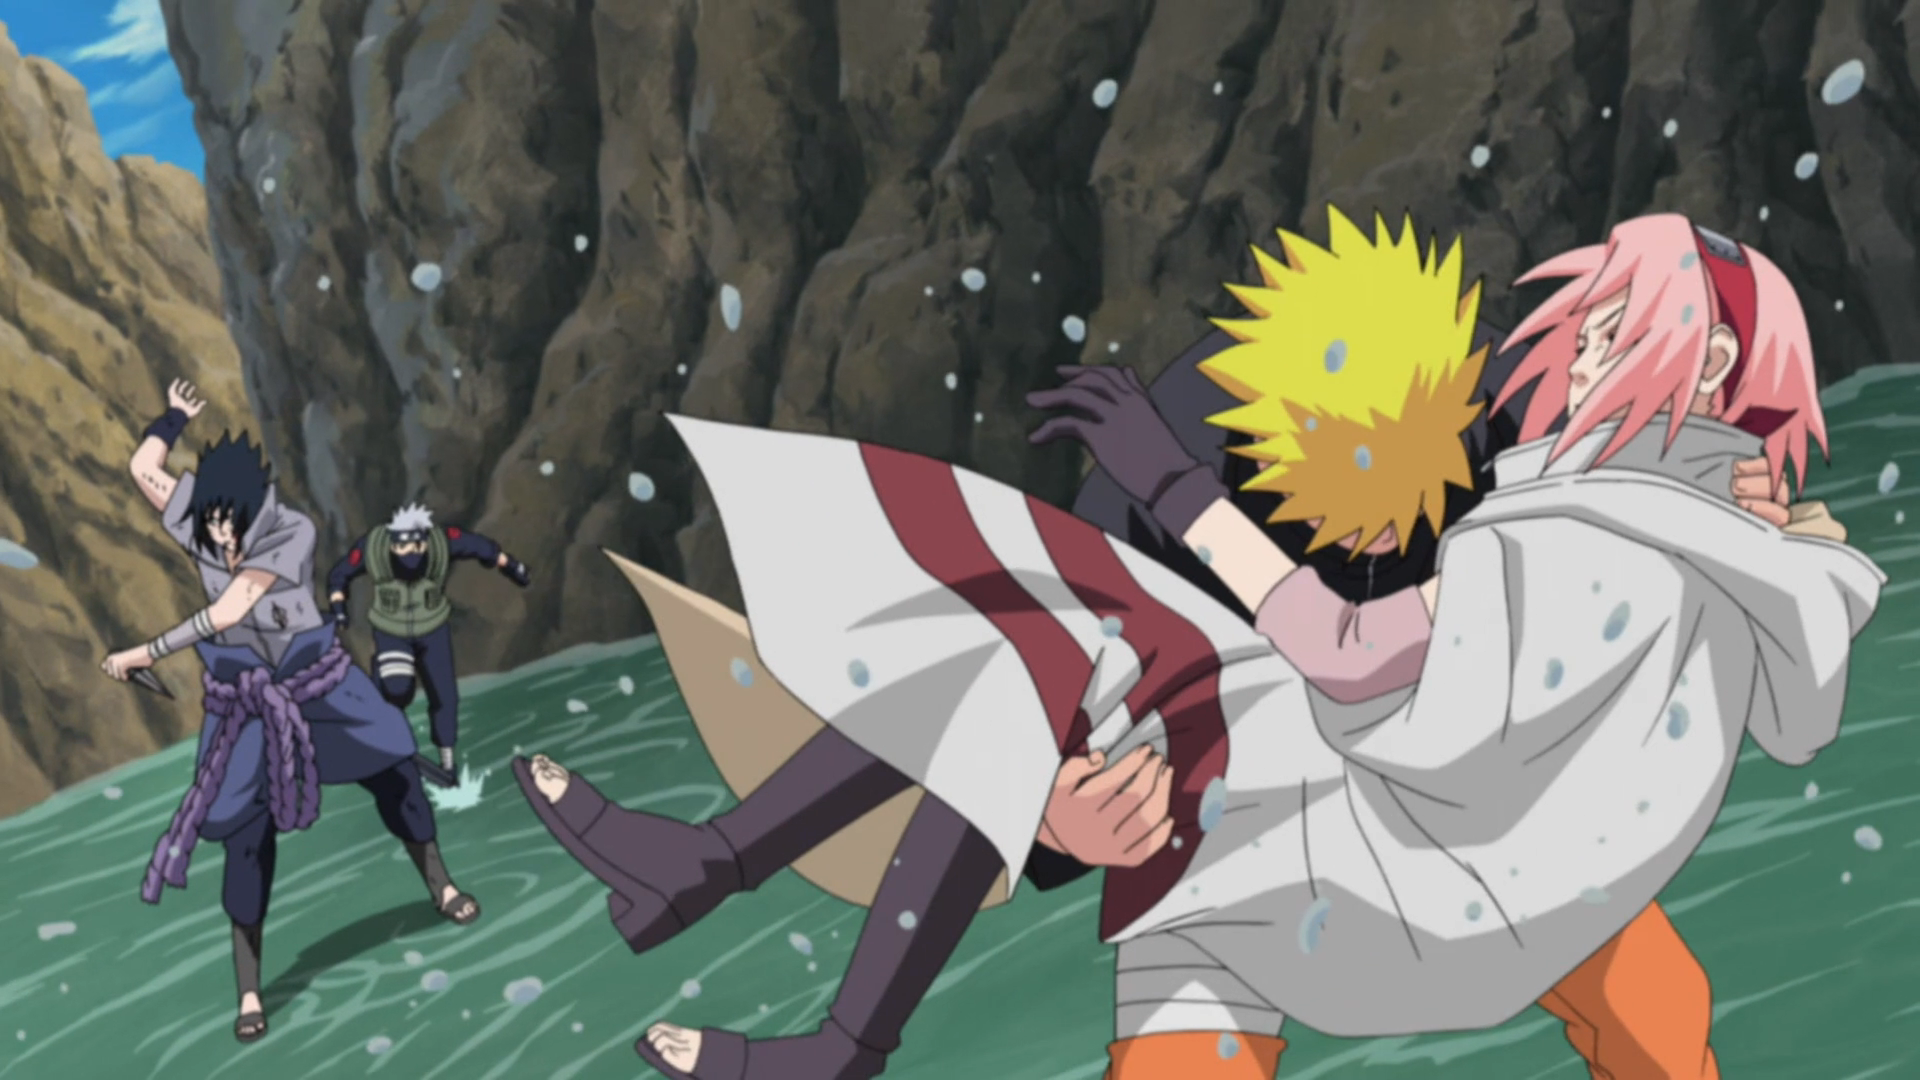 Team 7 - Naruto vs. Sasuke OVA by CartoonPerson on DeviantArt